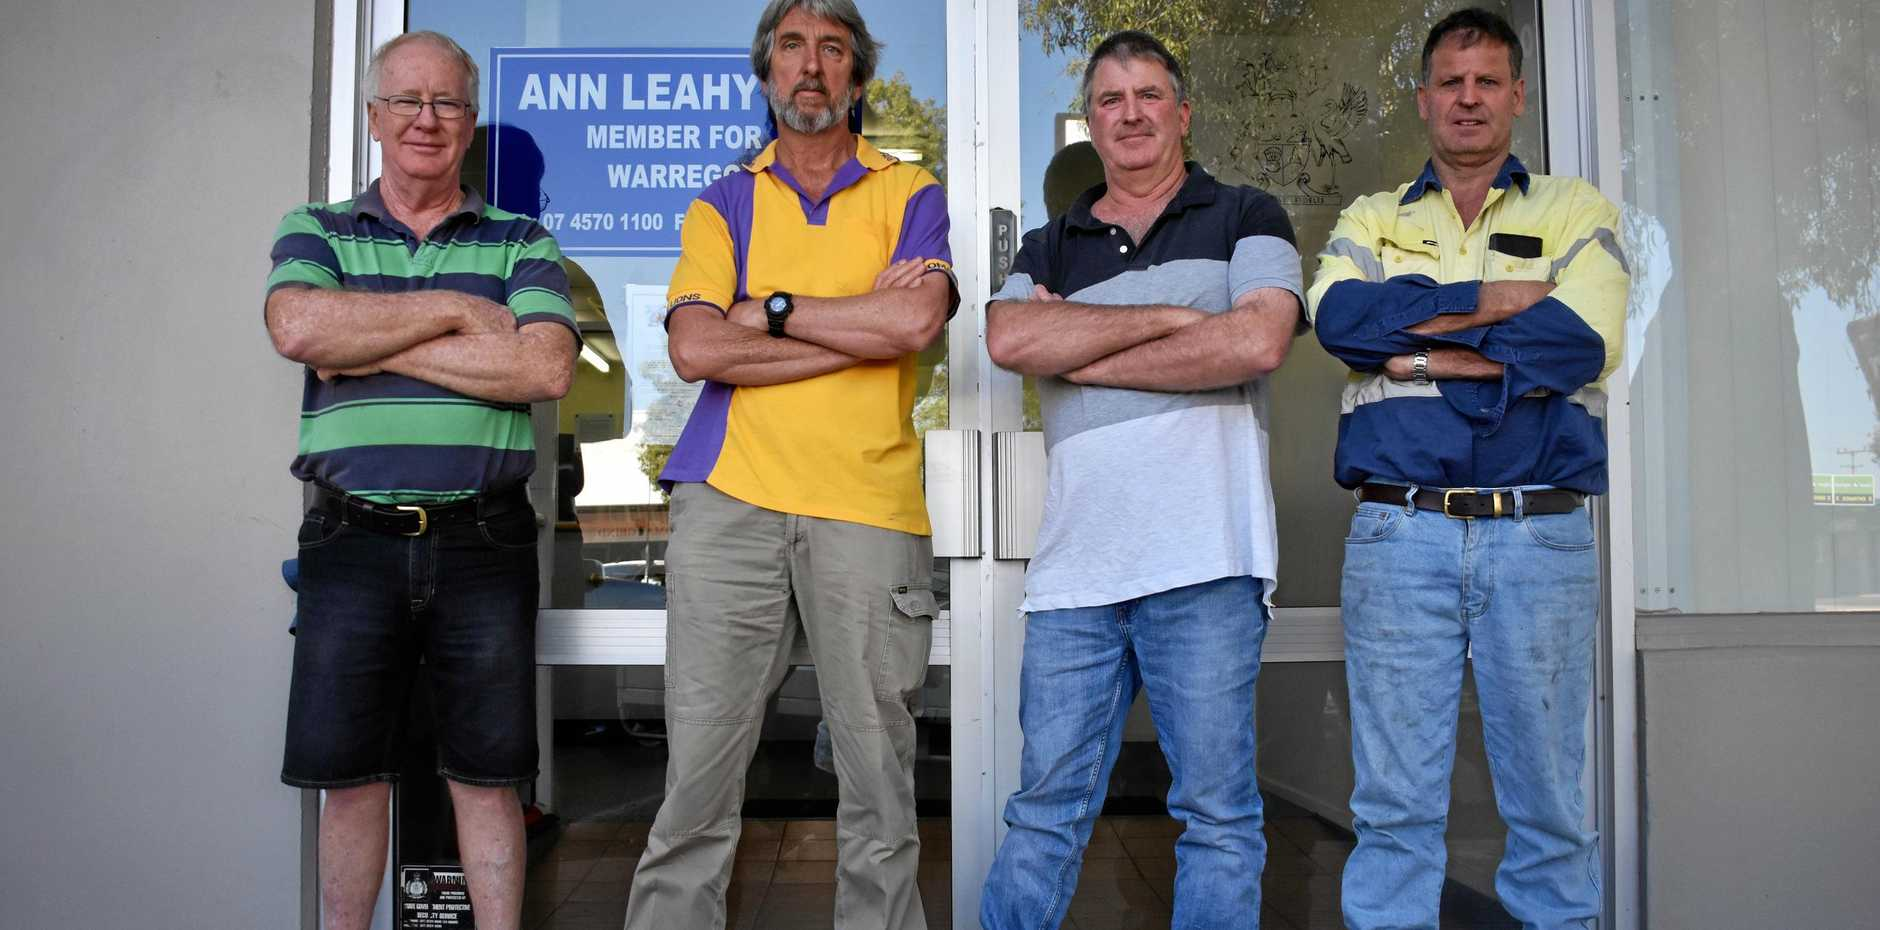 TAKING A STAND: Gary Law, Rick Grinsell, Grant Baker and Dale Baker protested outside Ann Leahy's office Friday morning over vandalism.